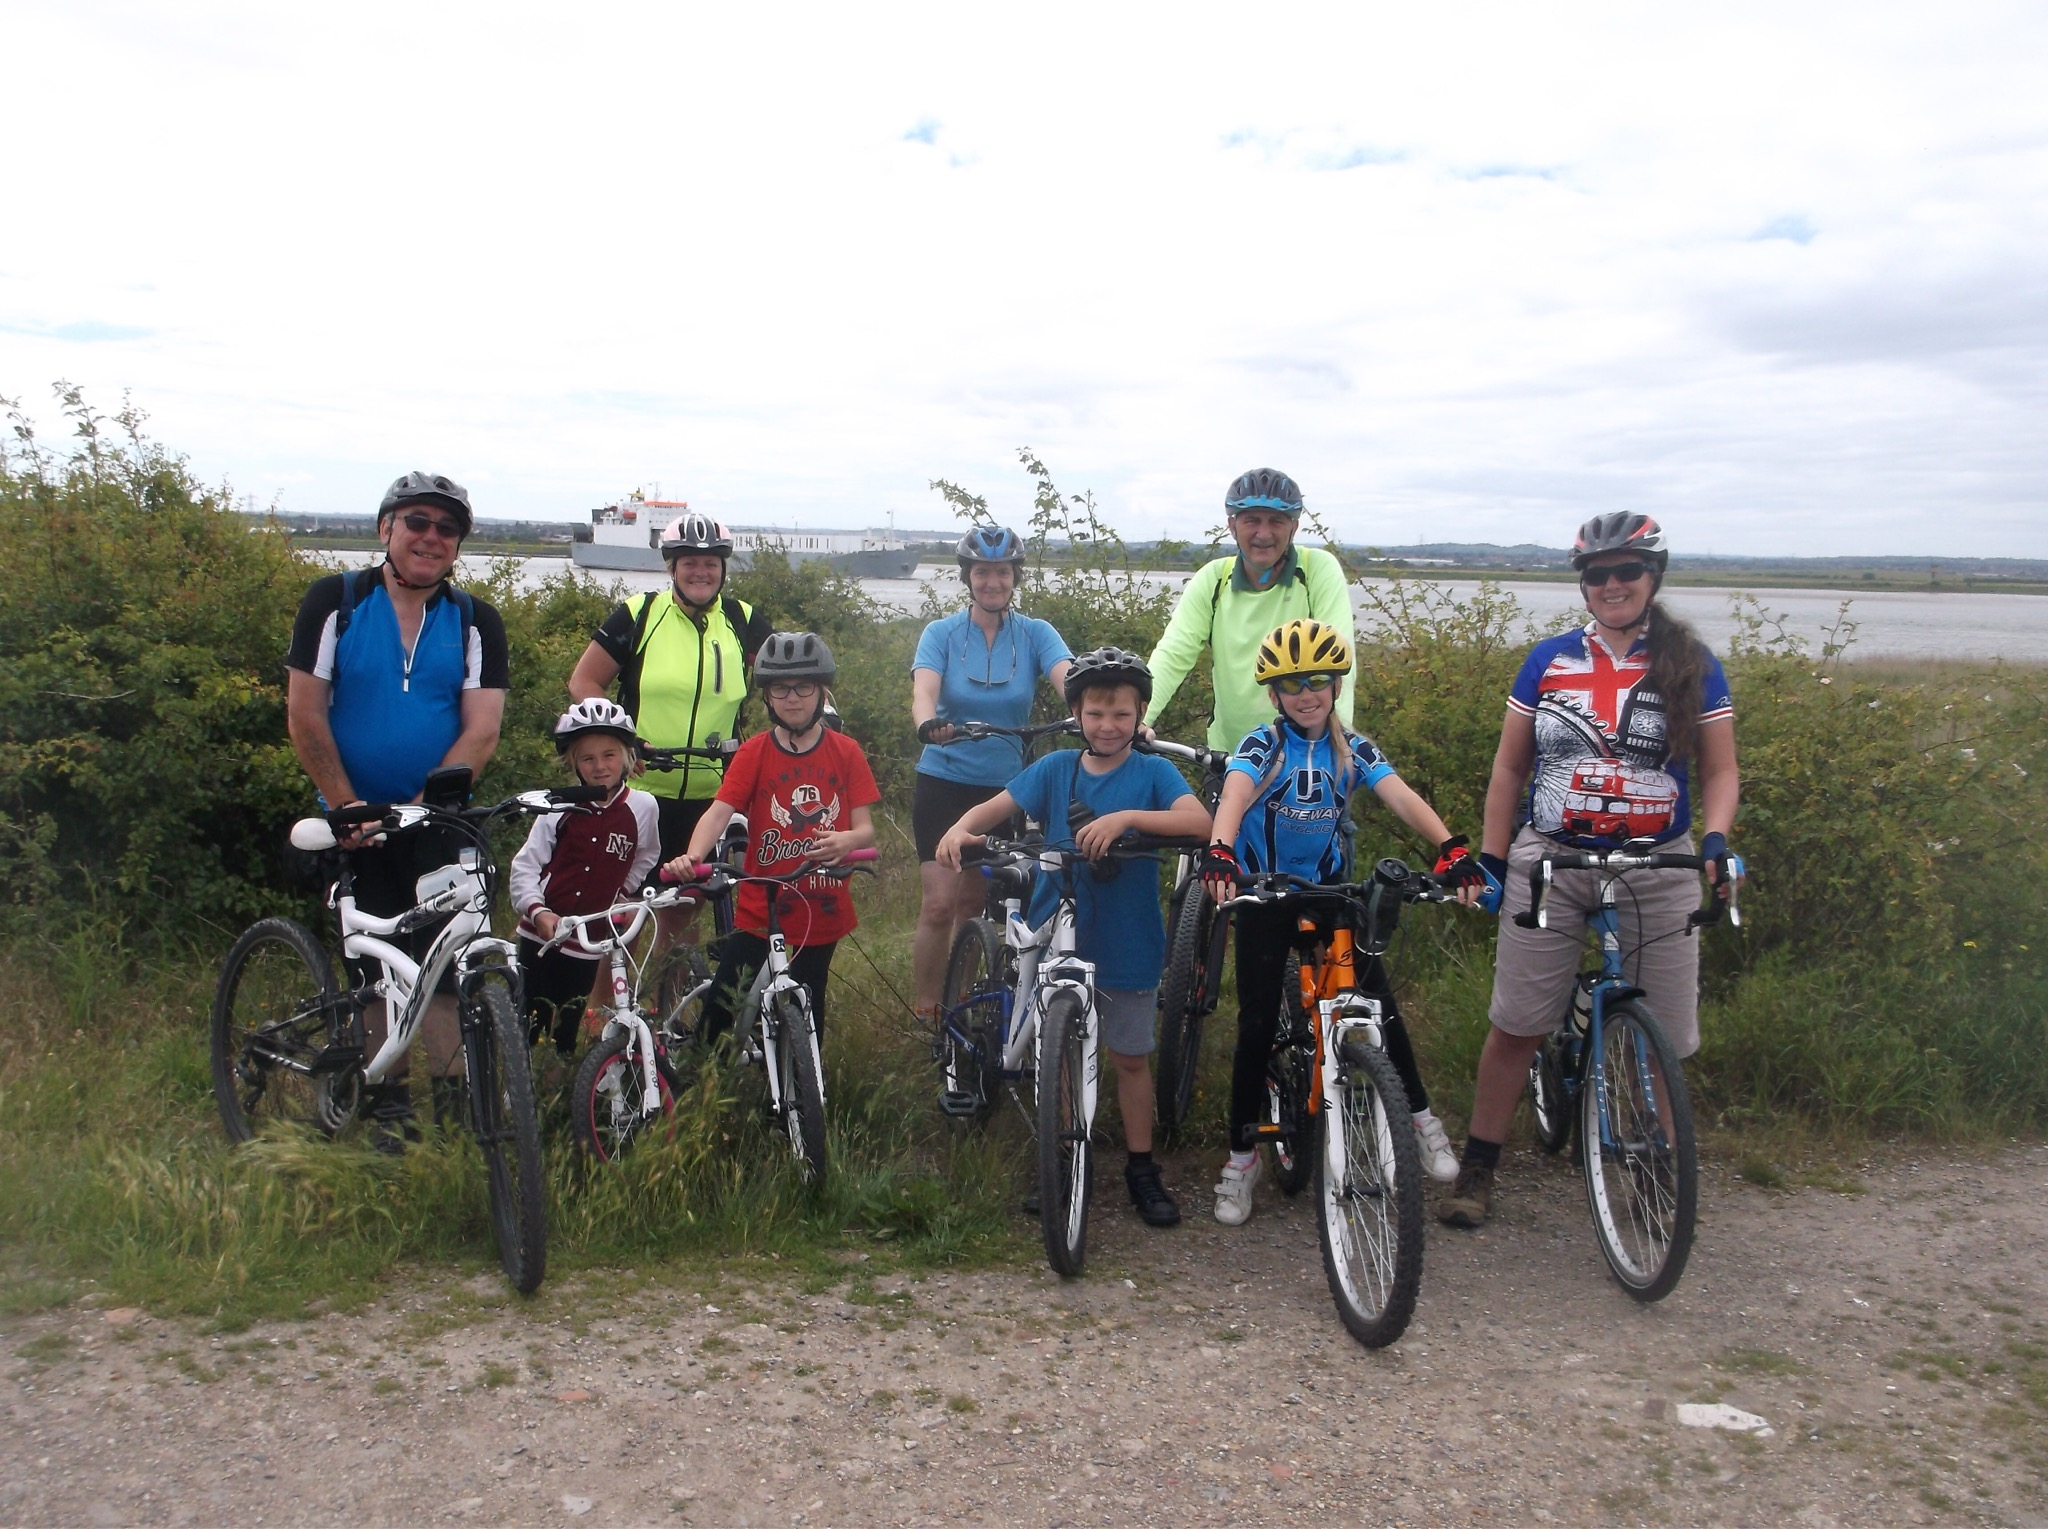 Gateway Family Ride To Thameside Nature Park – Saturday 9th June